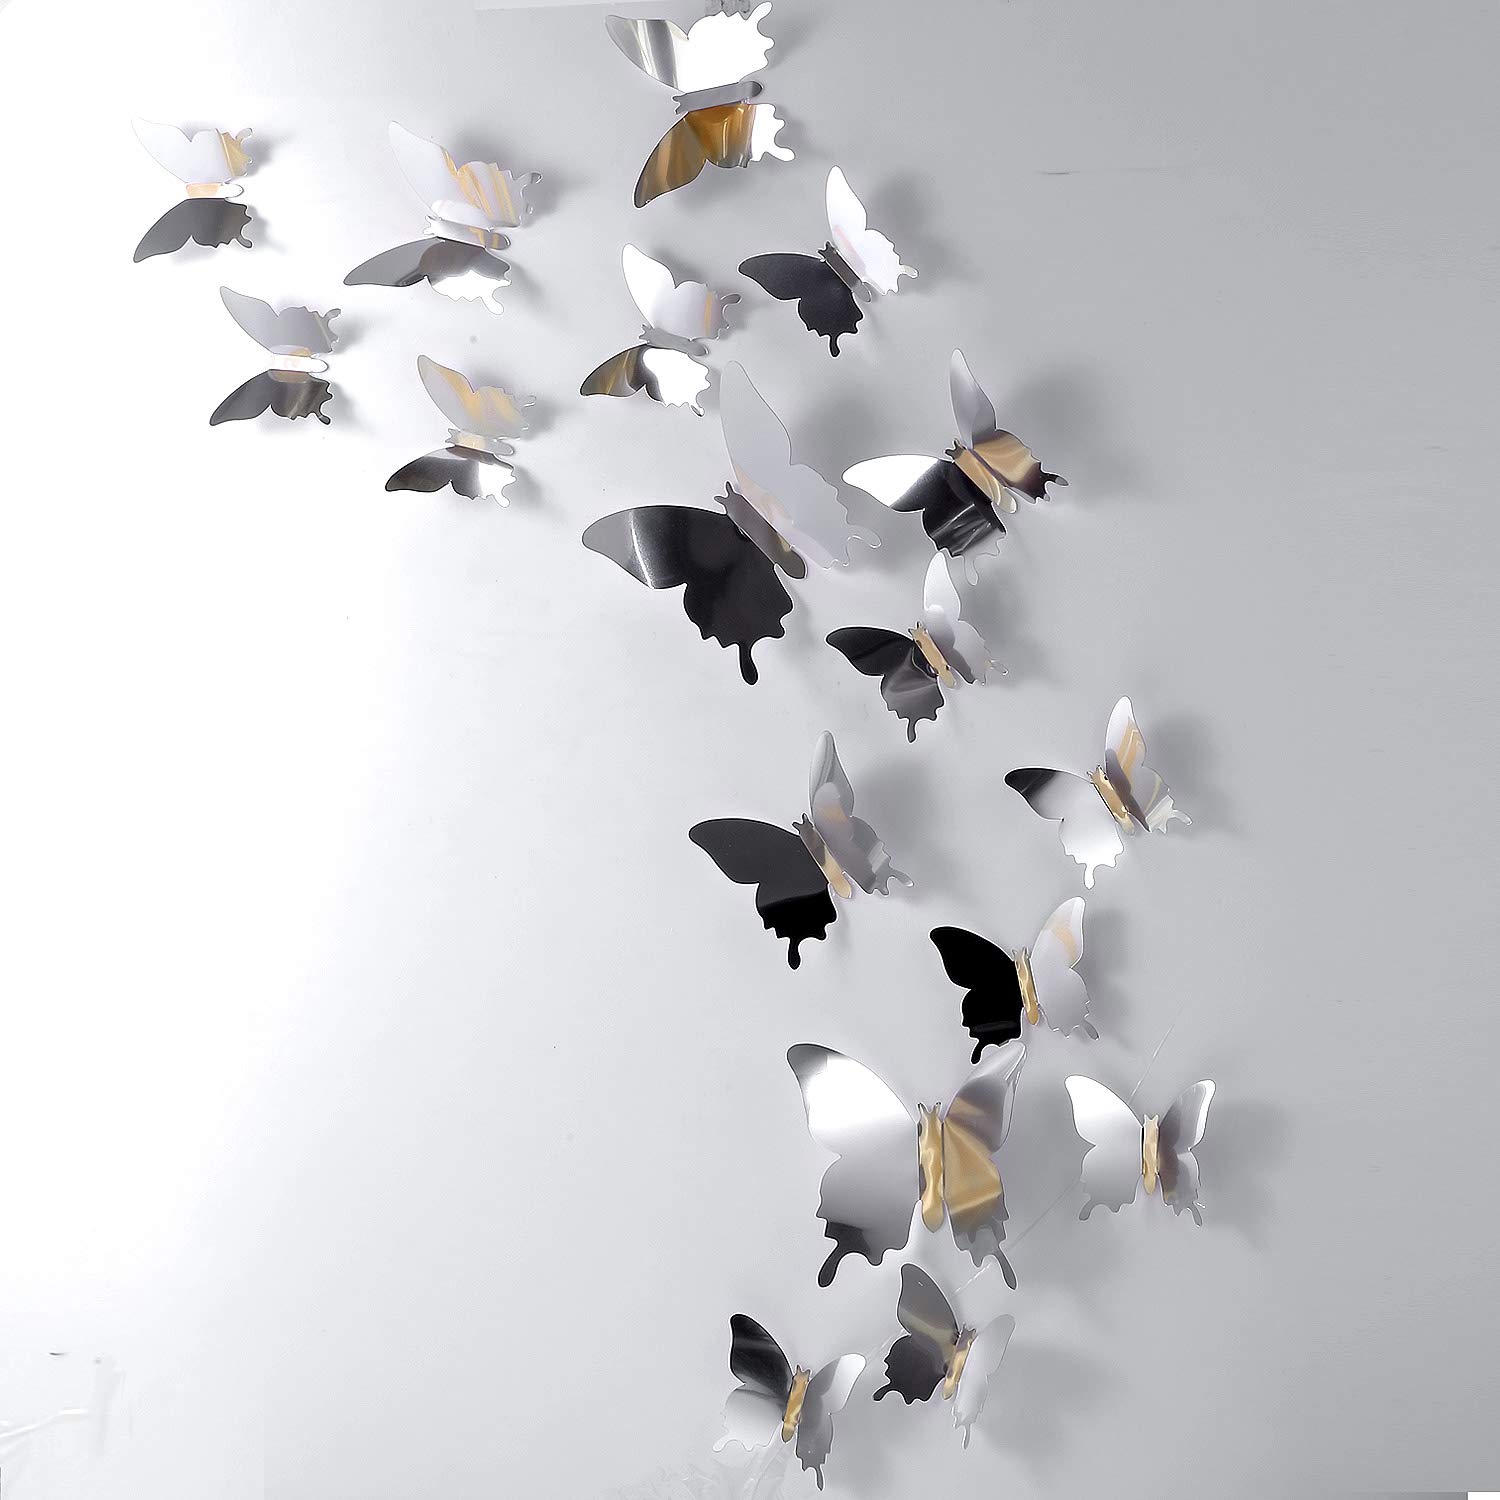 48 Pieces DIY Mirror Butterfly Combination 3D Butterfly Wall Stickers Decals Home Decoration